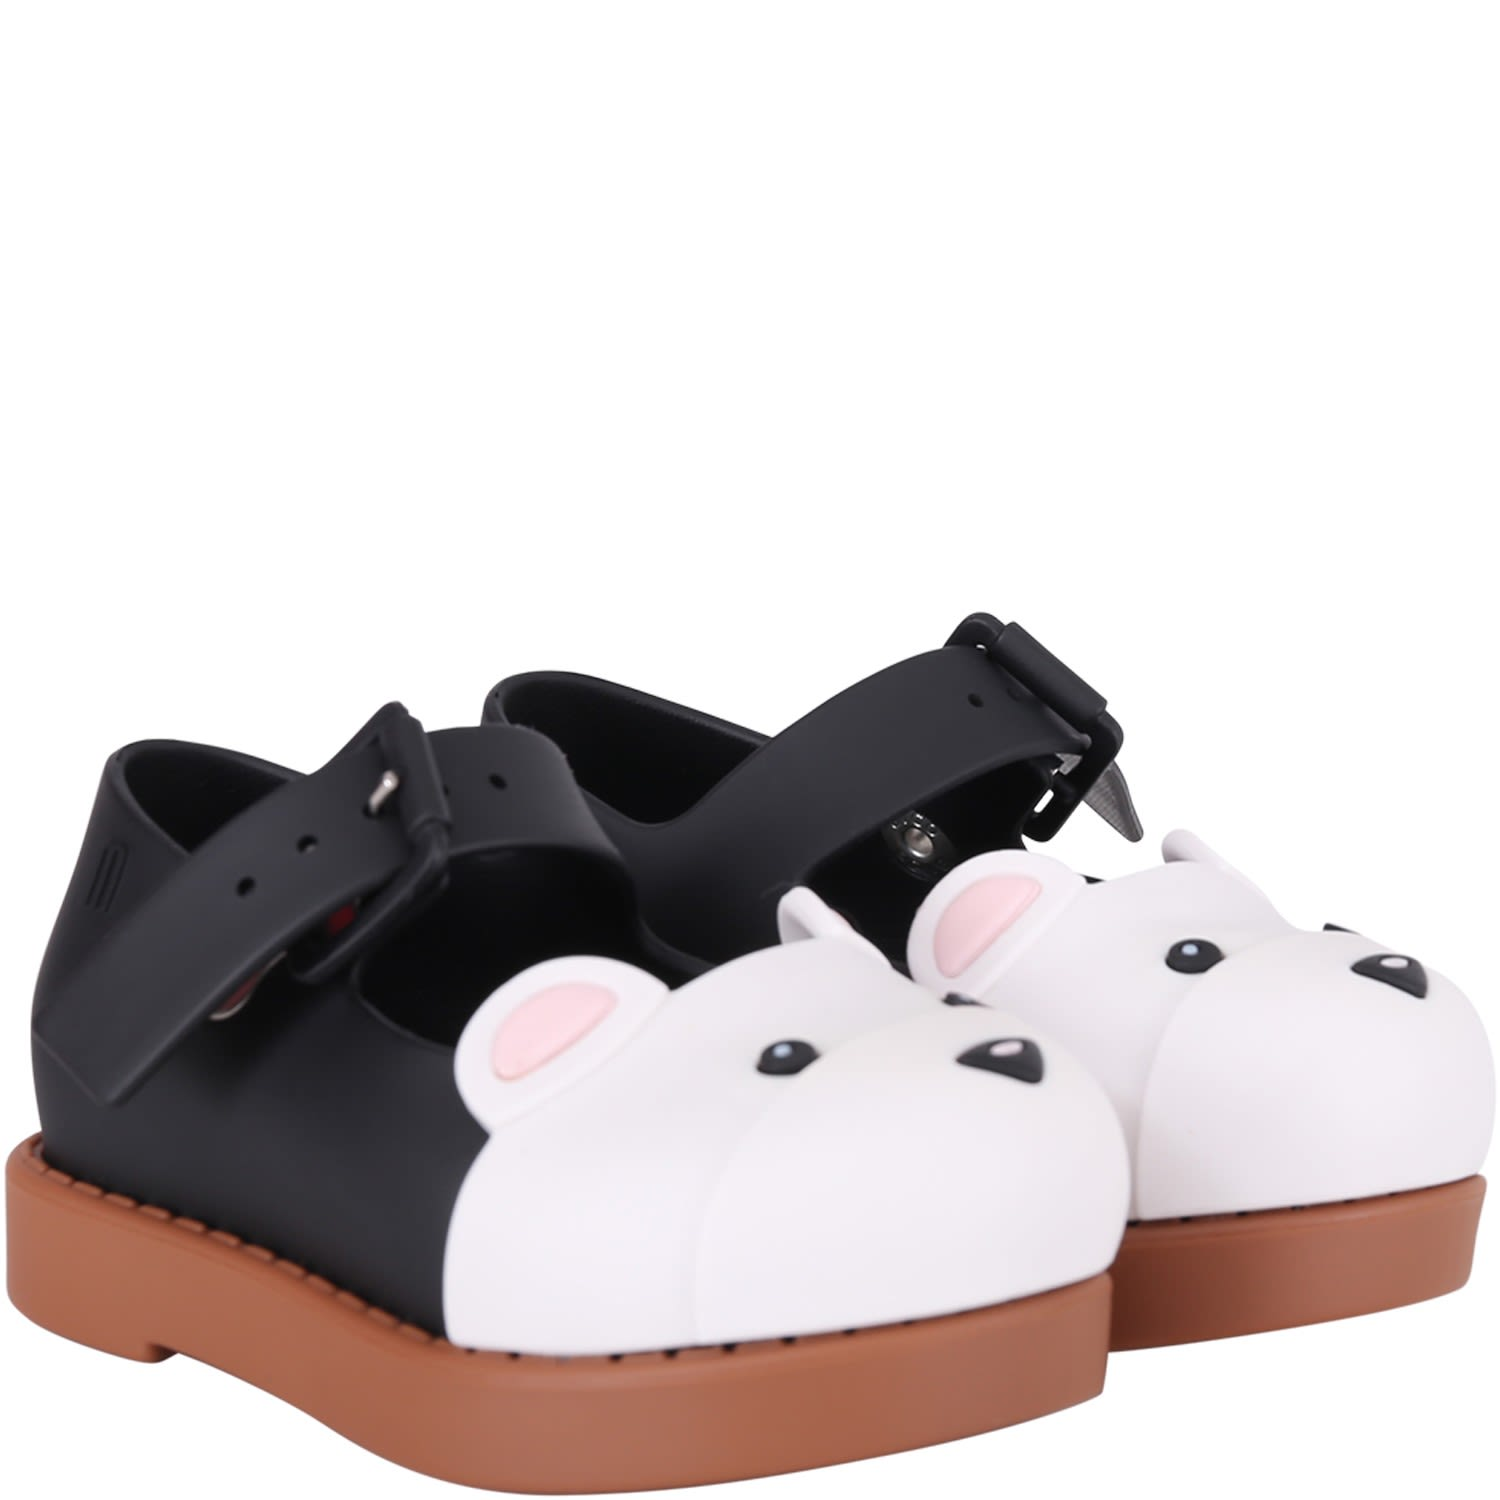 Black And Beige Ballerina Flats For Girl With Bear